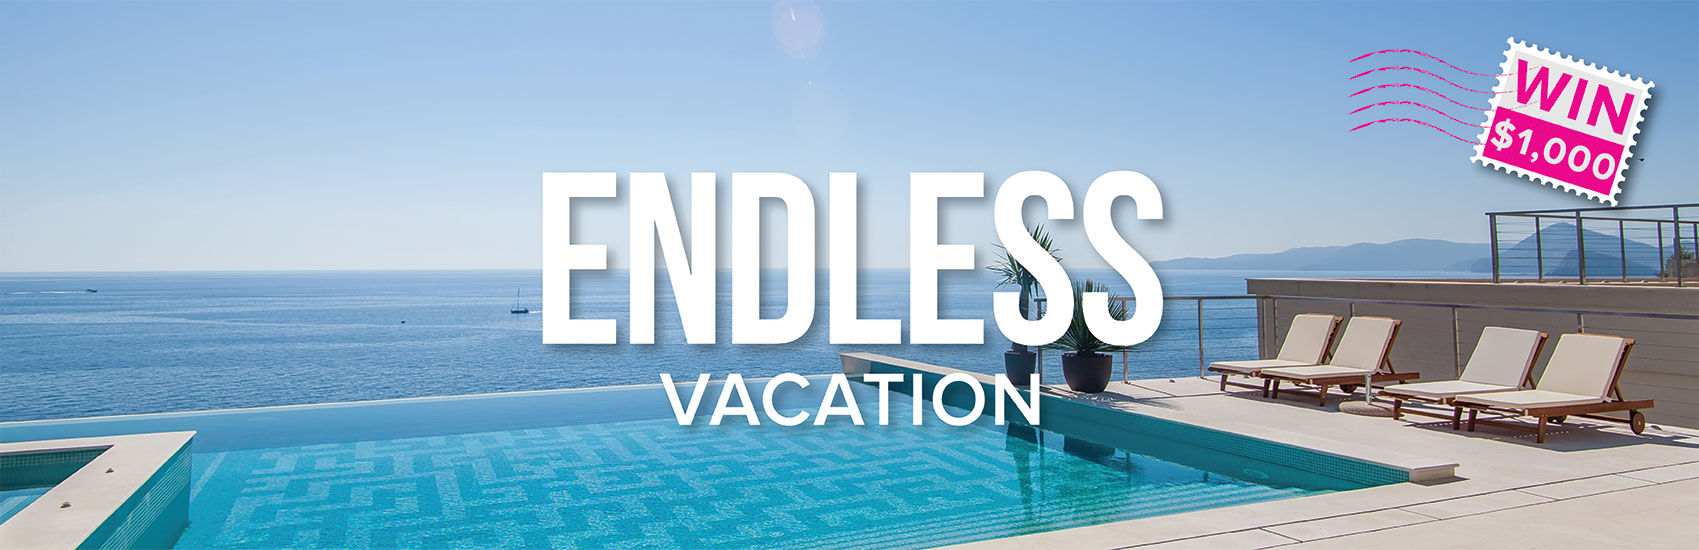 Tips For an All-Inclusive Vacation 1